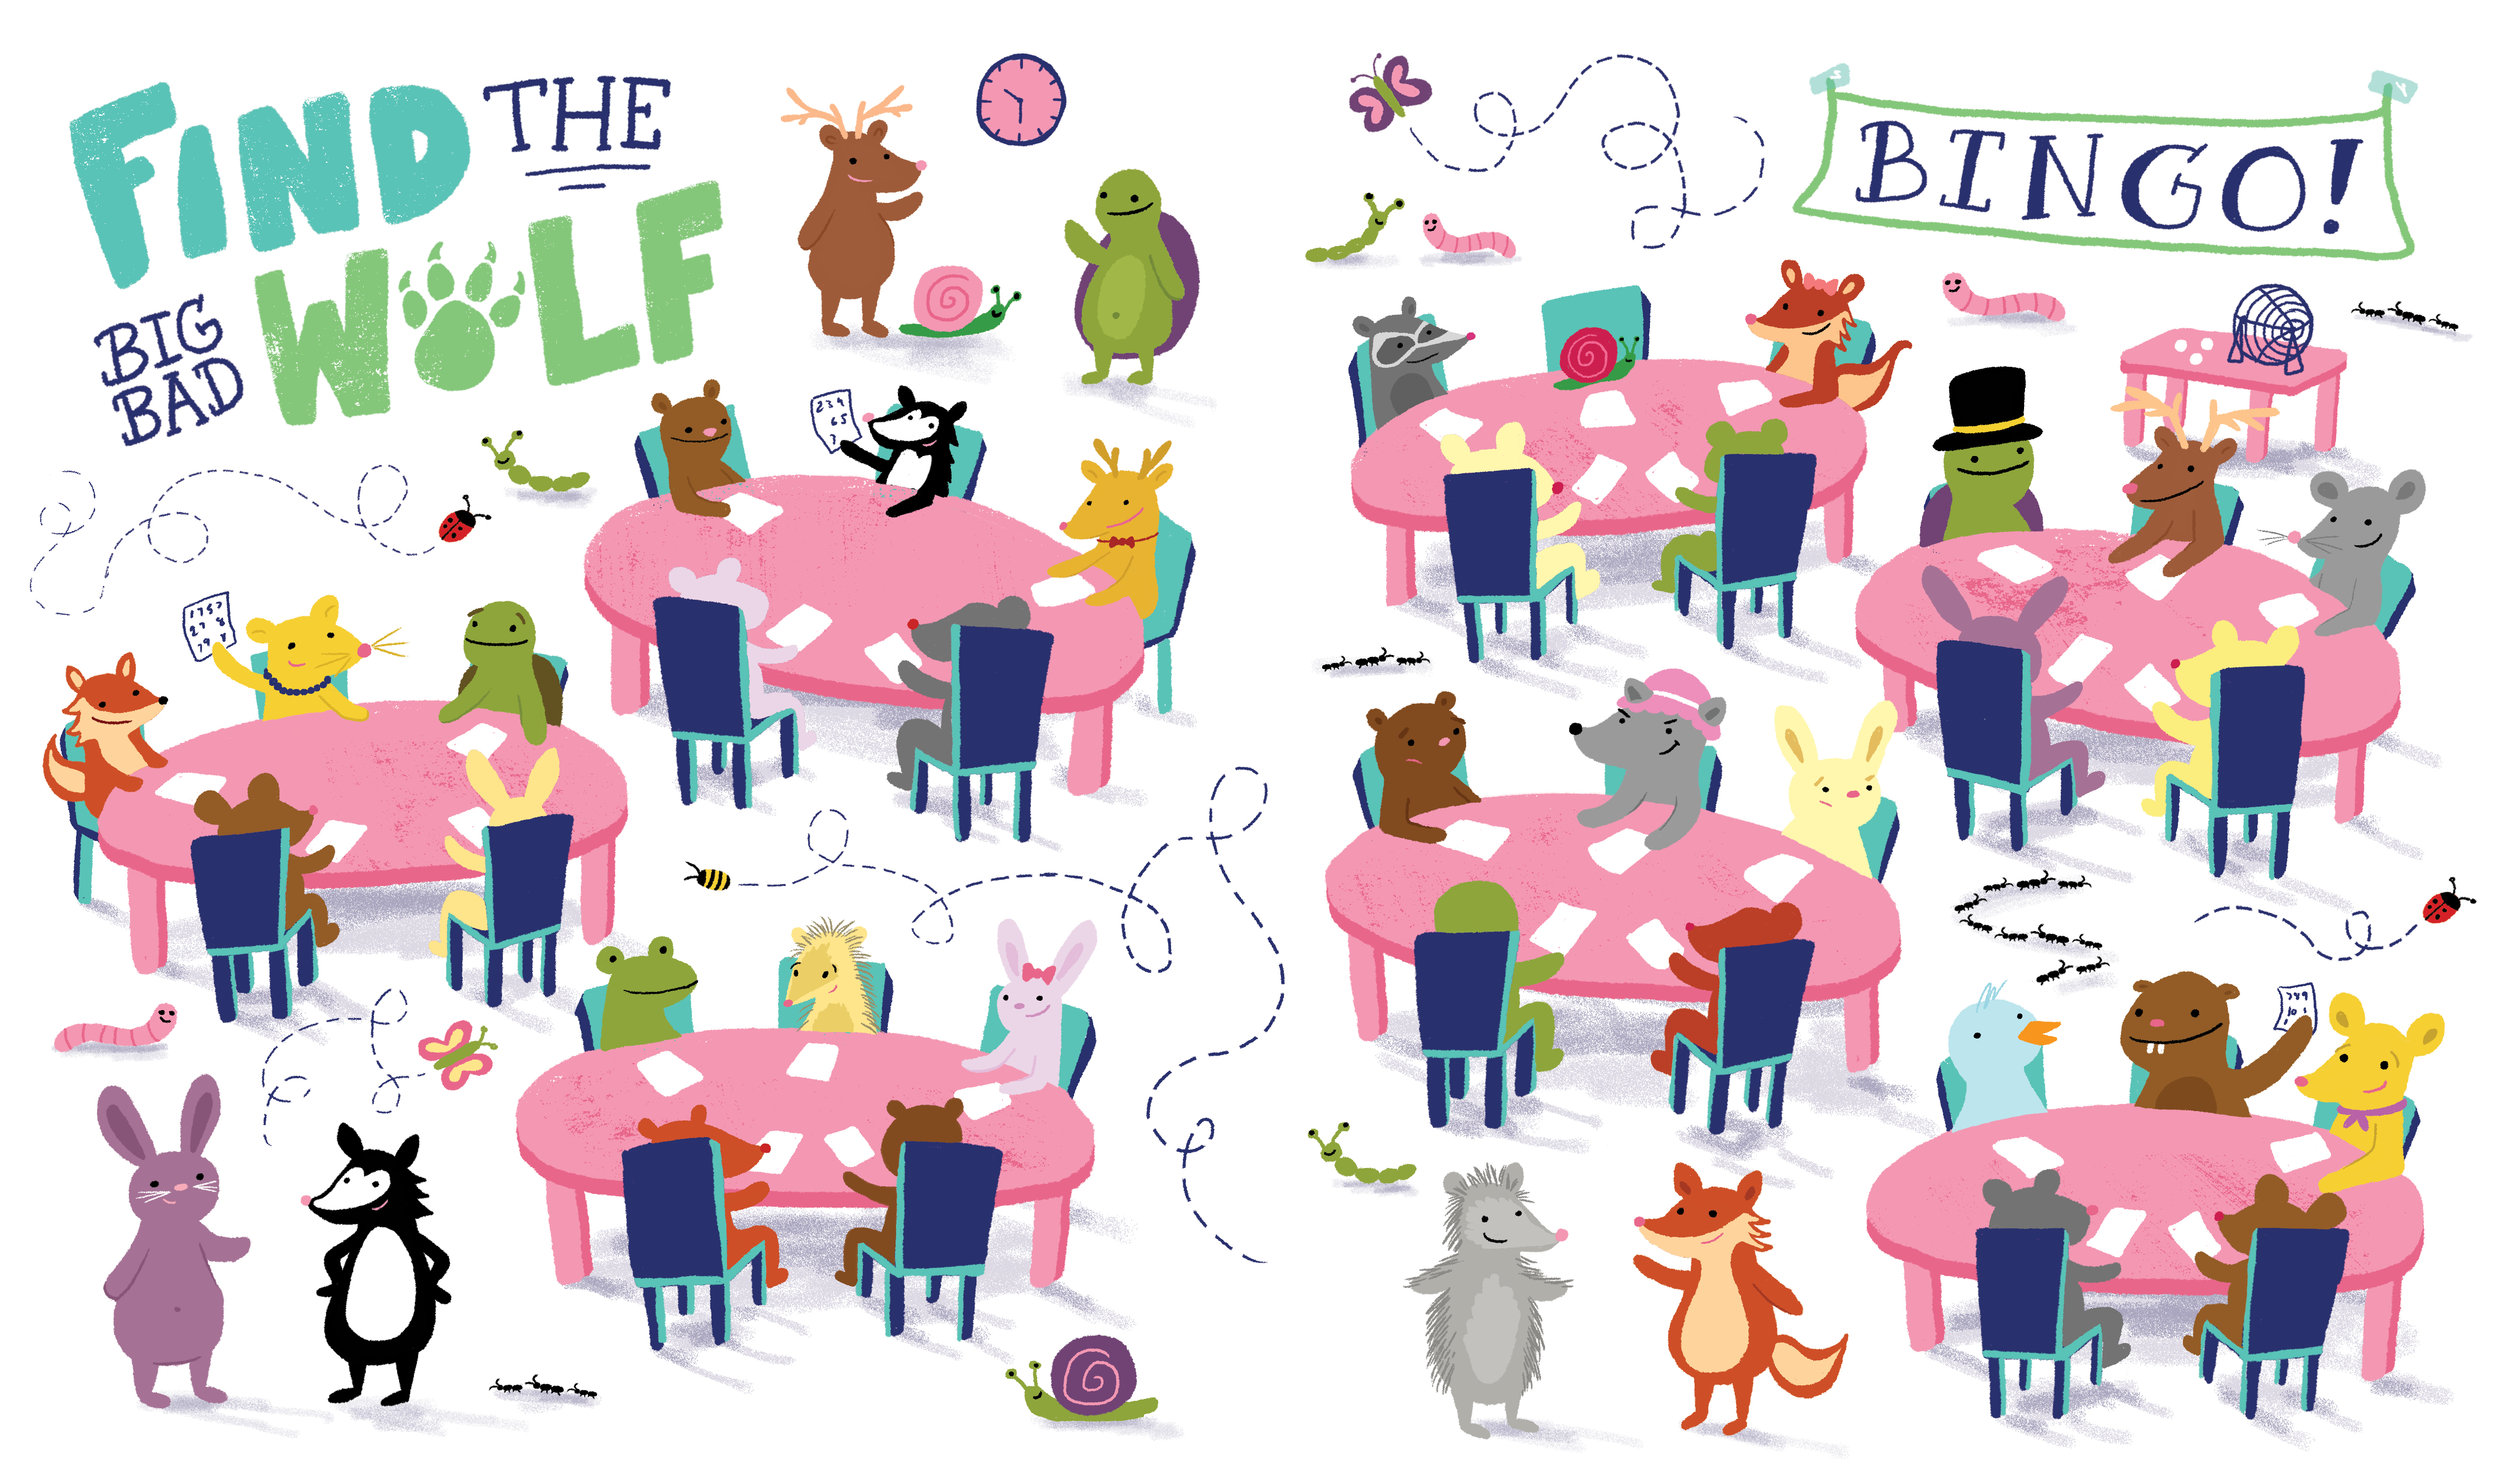 Spread for Mishmania activity book, published by Little Bee Books